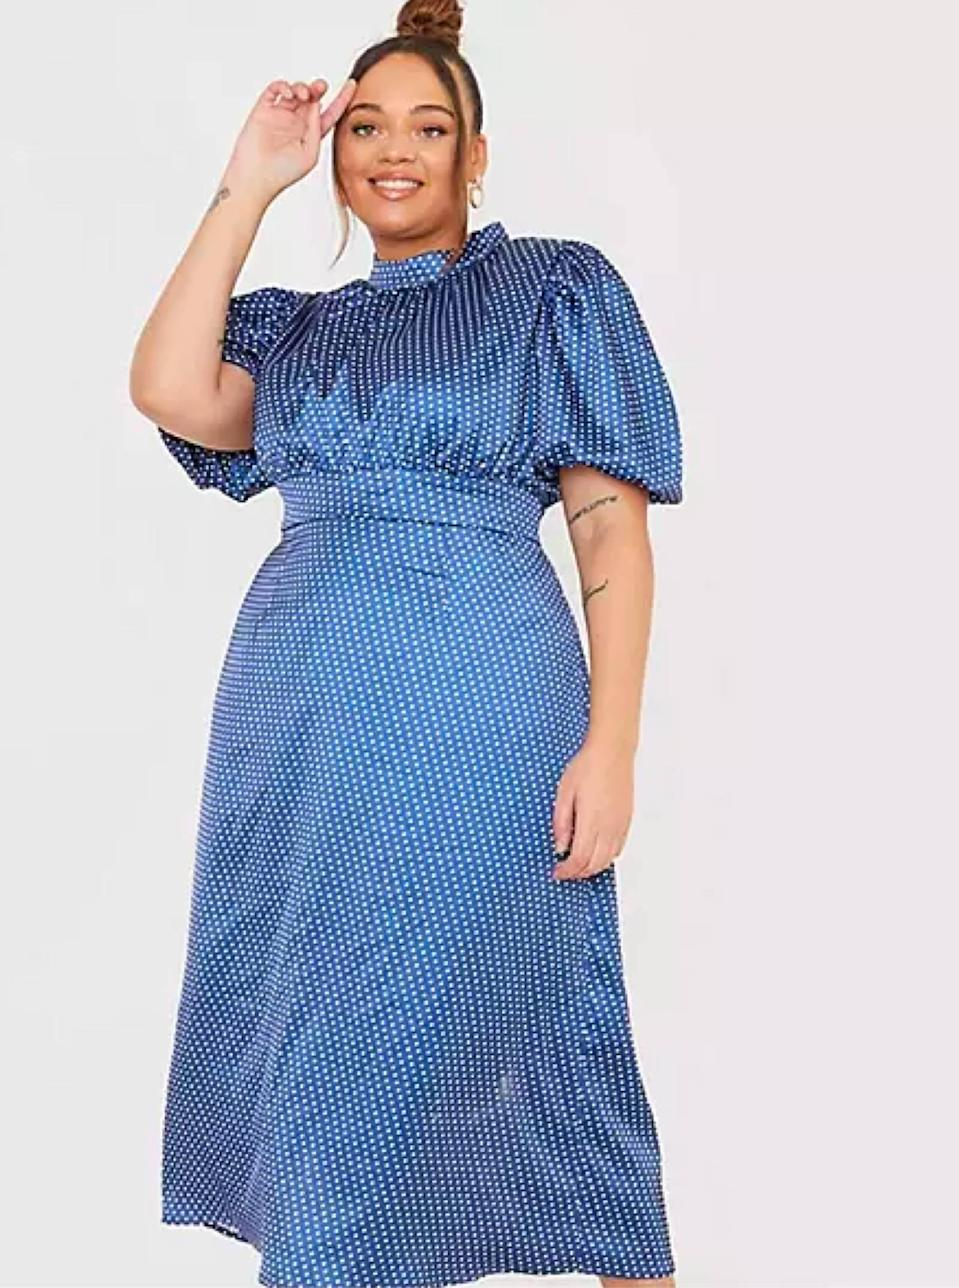 """Baby polka dots forever. $58, ASOS. <a href=""""https://www.asos.com/us/in-the-style-plus/in-the-style-plus-x-lorna-luxe-puff-sleeve-midi-dress-in-navy-polka-dot-print/prd/22638027"""" rel=""""nofollow noopener"""" target=""""_blank"""" data-ylk=""""slk:Get it now!"""" class=""""link rapid-noclick-resp"""">Get it now!</a>"""